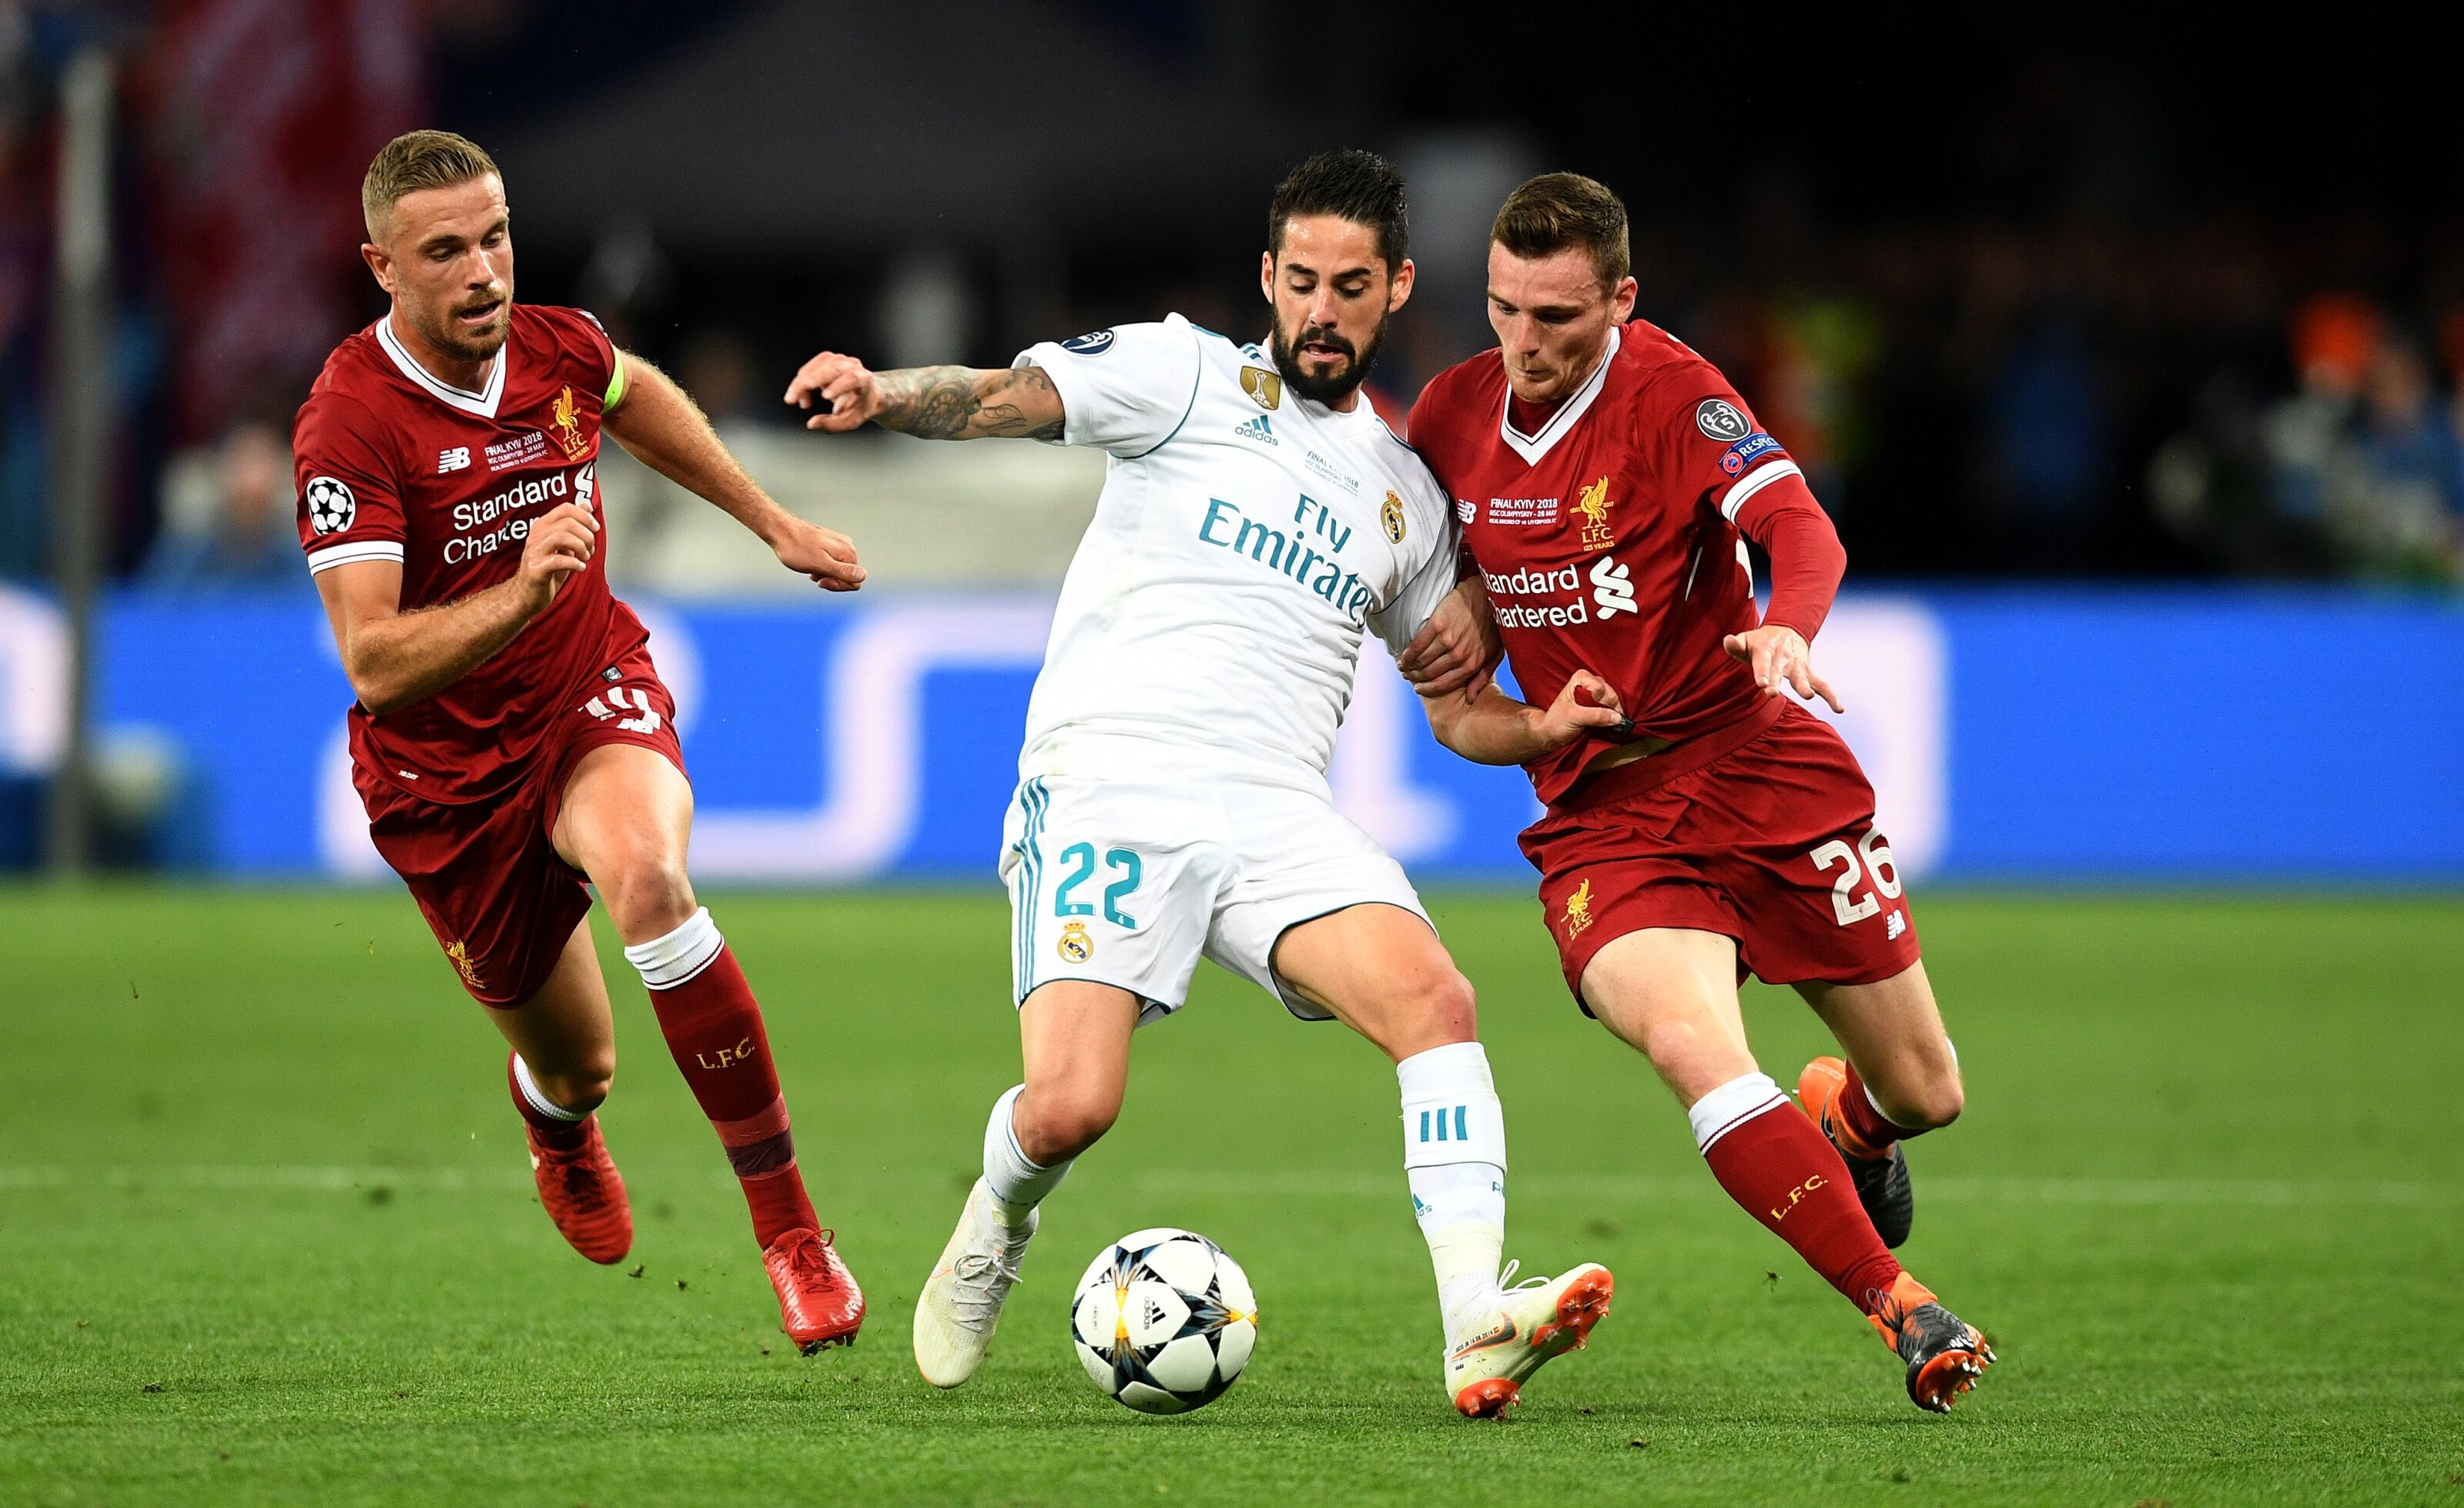 Liverpool transfer links to Isco are obviously total nonsense